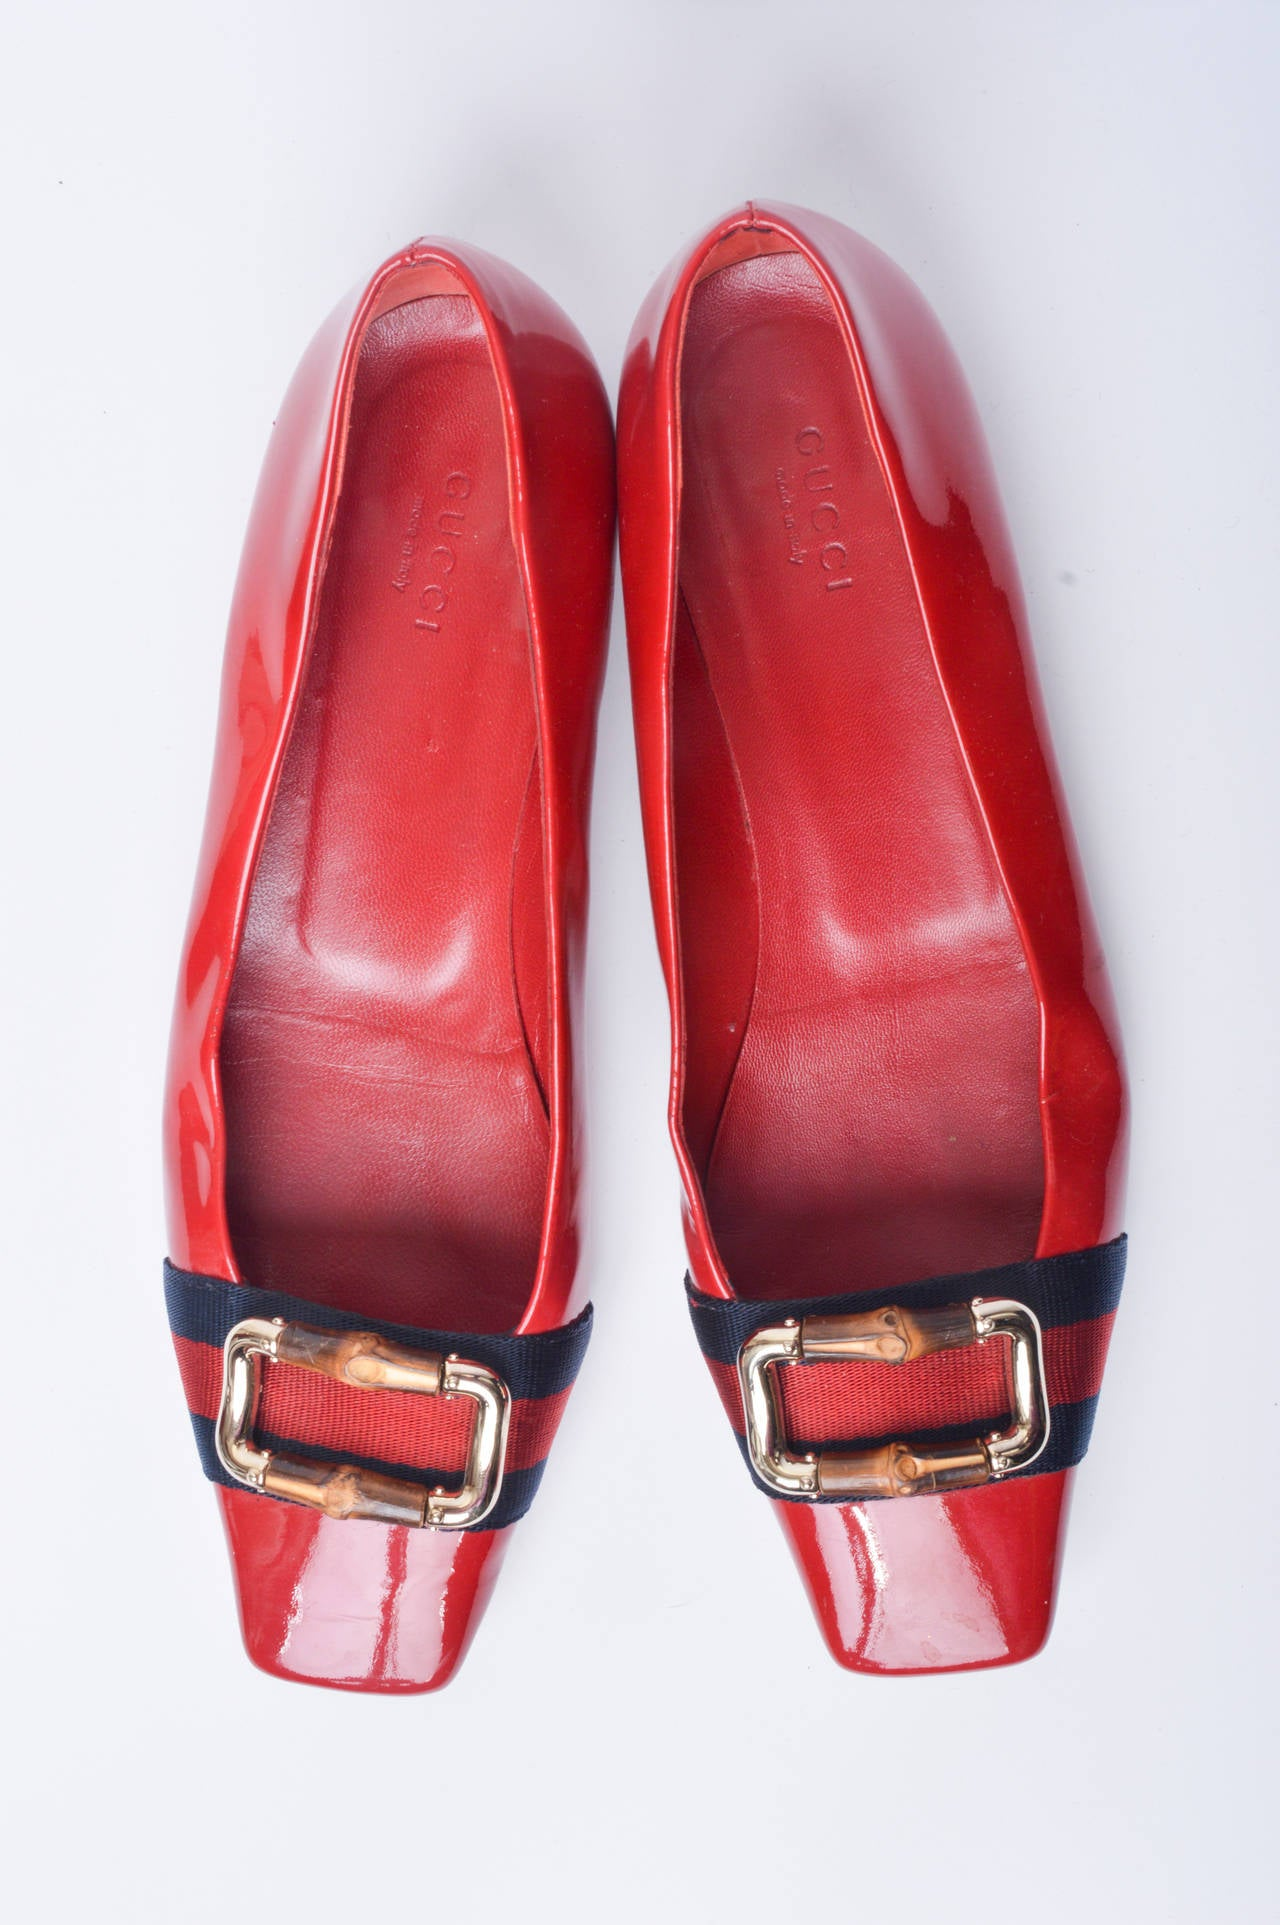 Gucci Red Patent Leather Mod Flats Size 8 In Excellent Condition For Sale In San Francisco, CA